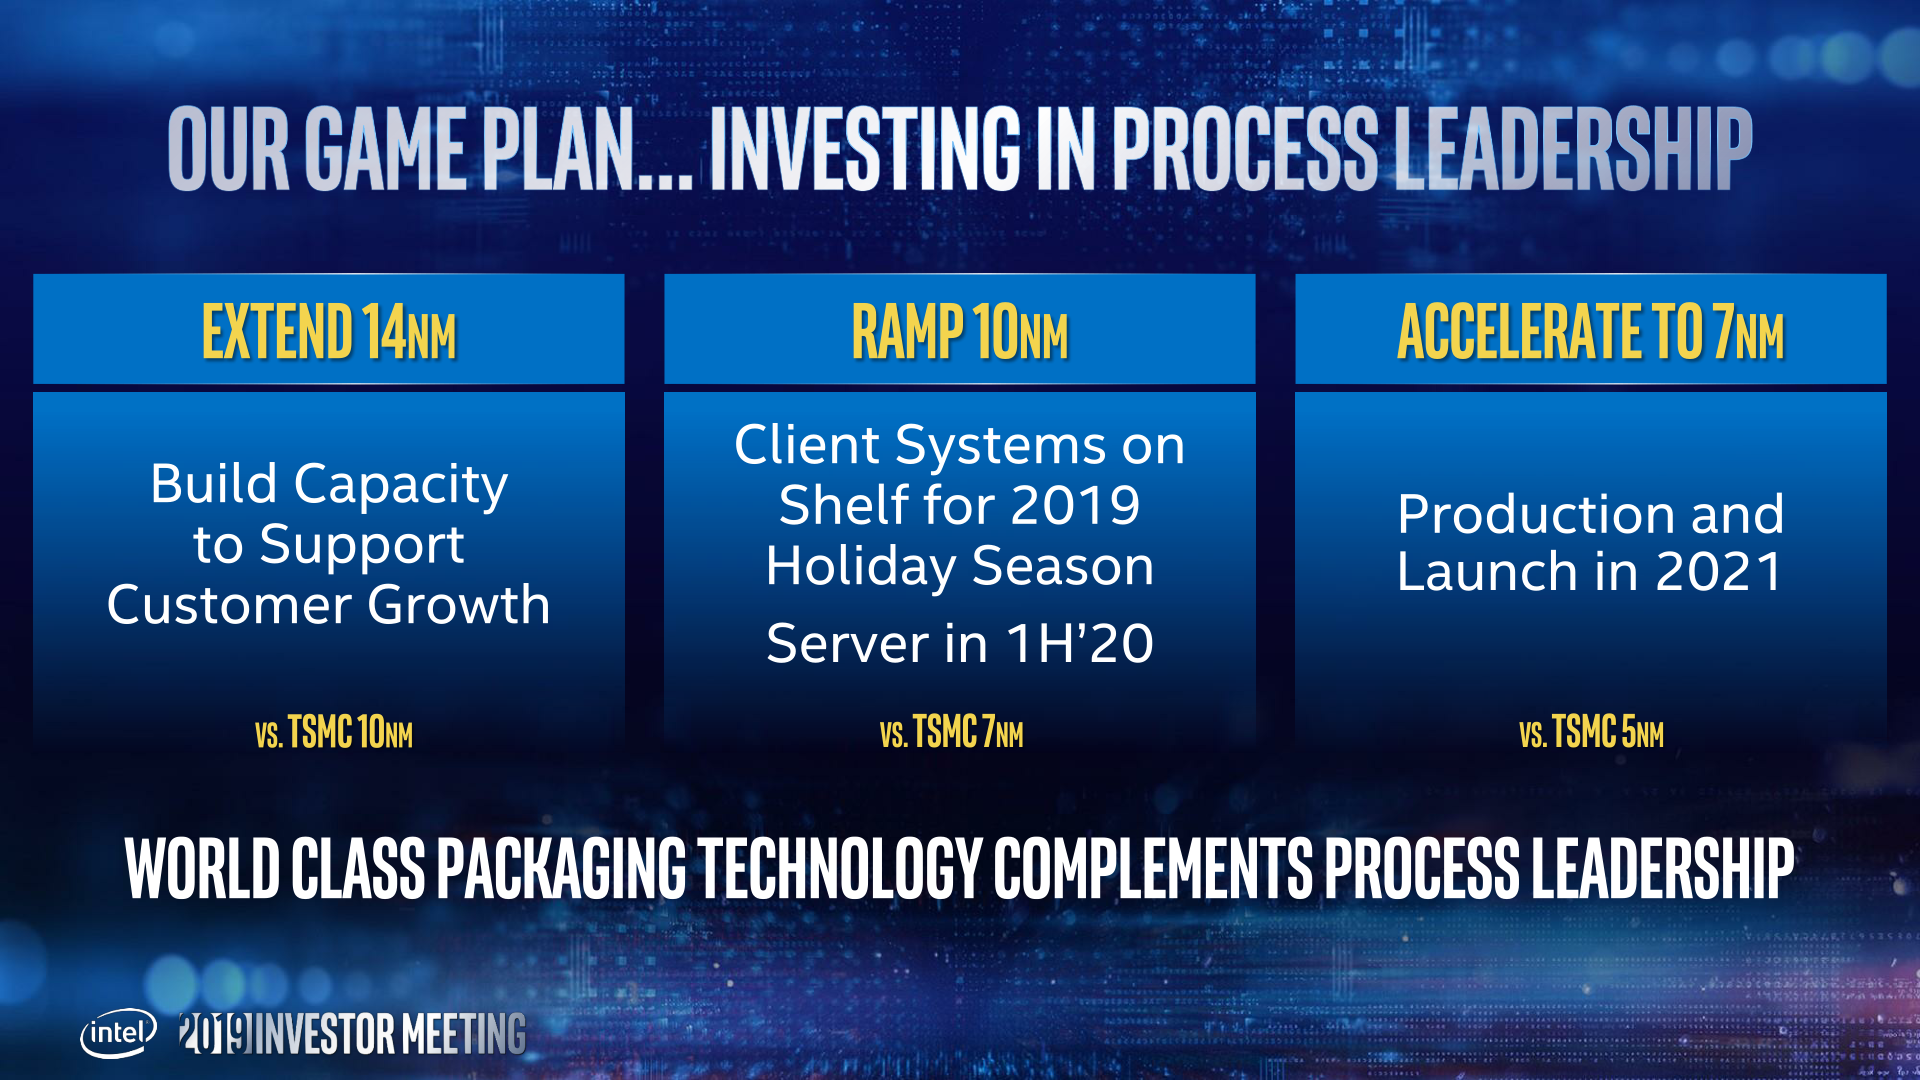 Intel Details Manufacturing through 2023: 7nm, 7+, 7++, with Next